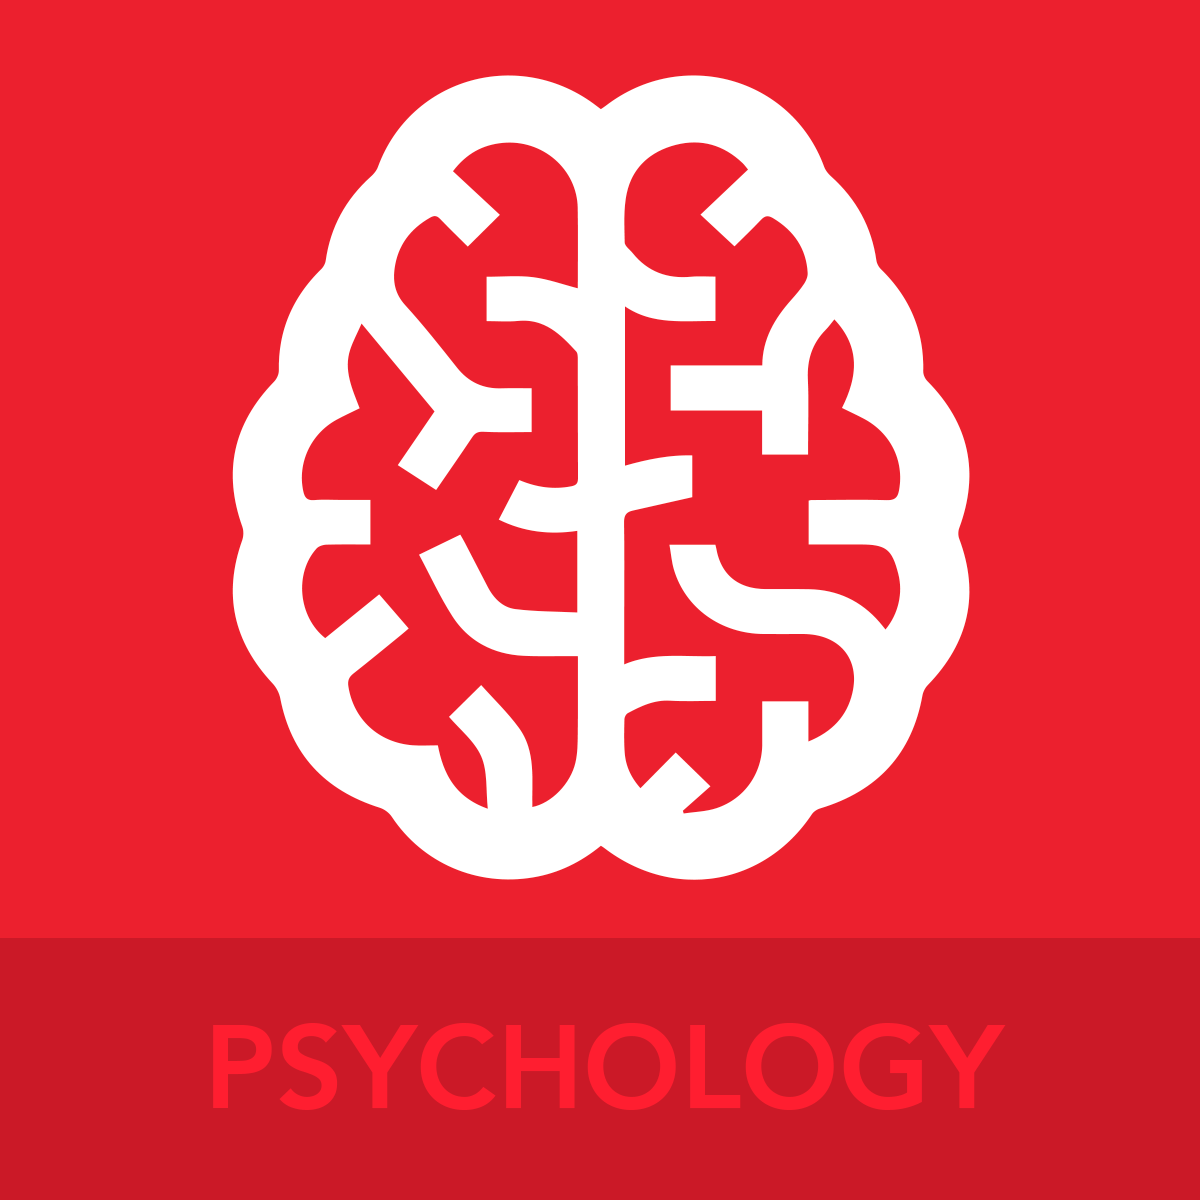 PSYCHOLOGY ICON BUTTON